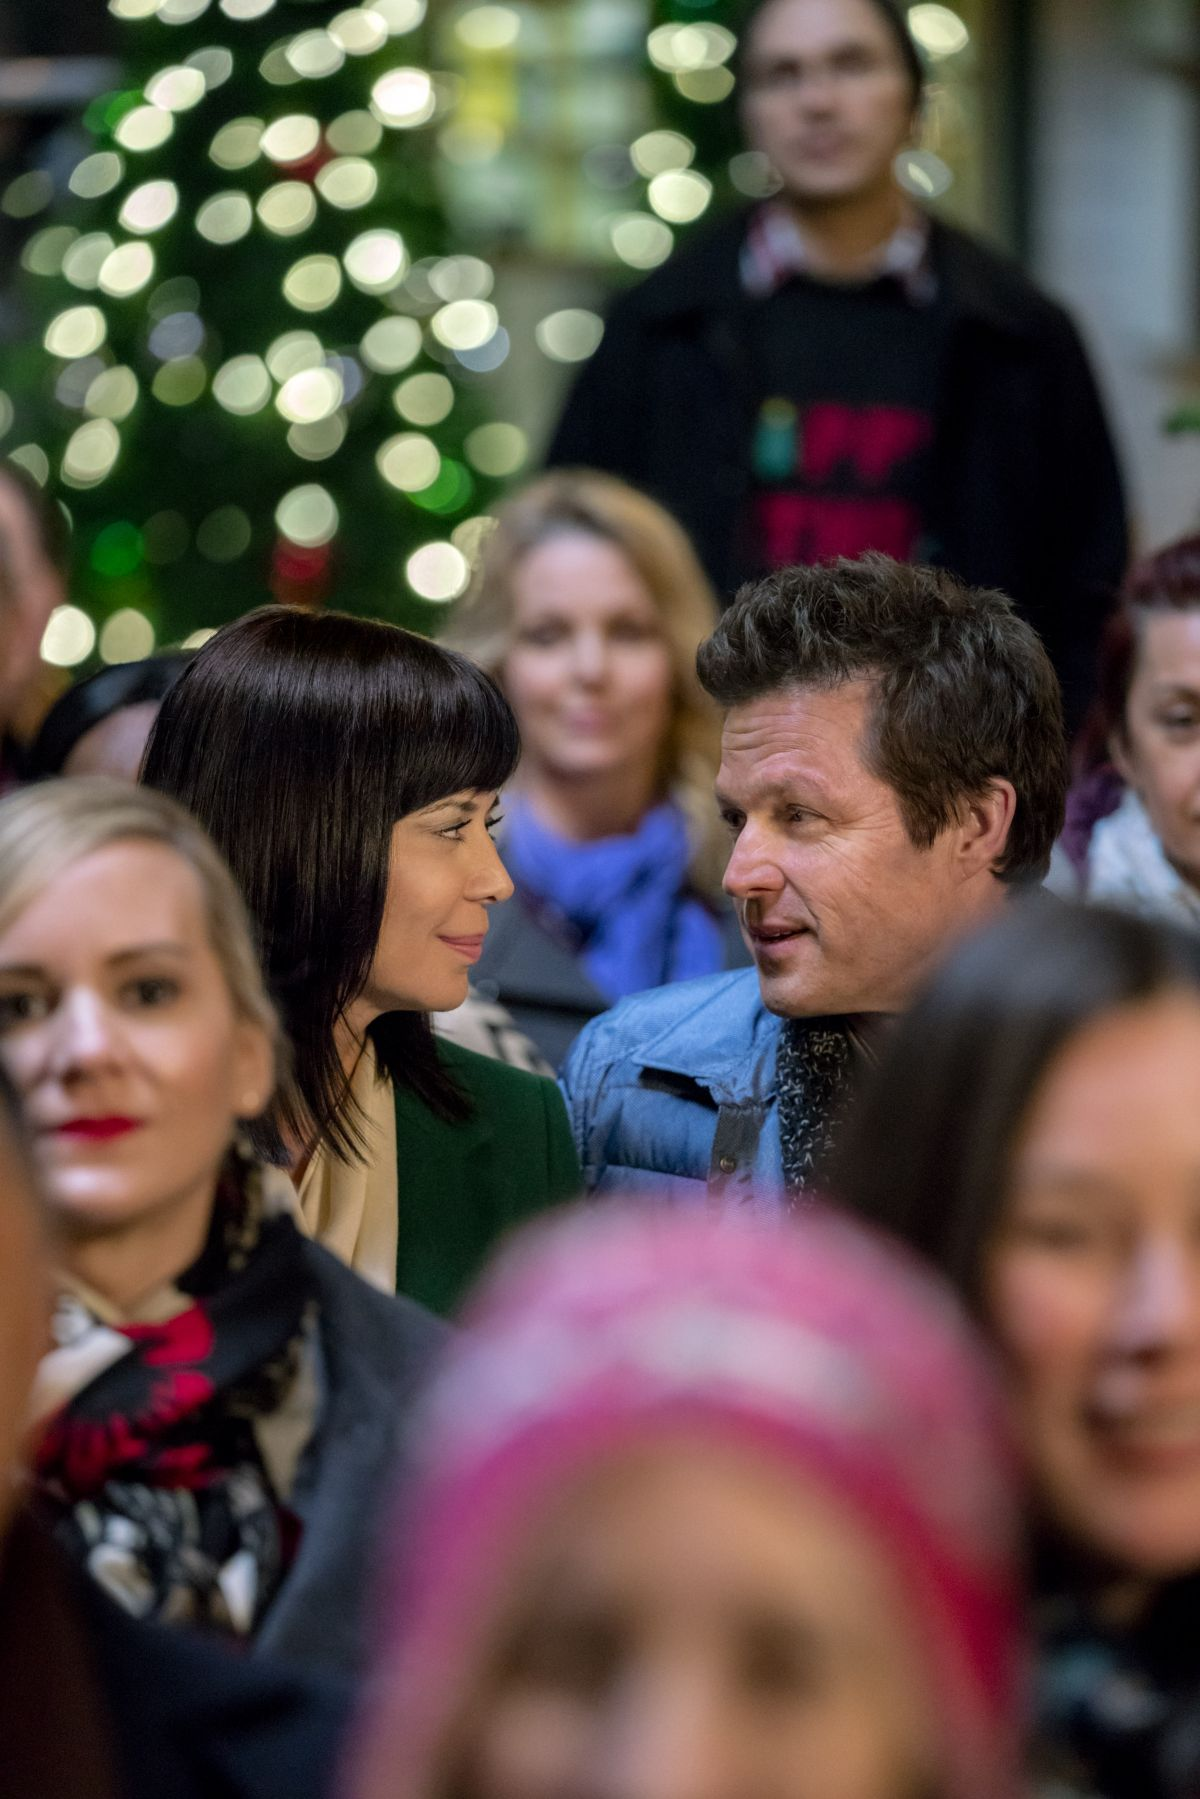 Christmas In The Air.Catherine Bell At Christmas In The Air 2017 Promos Stills